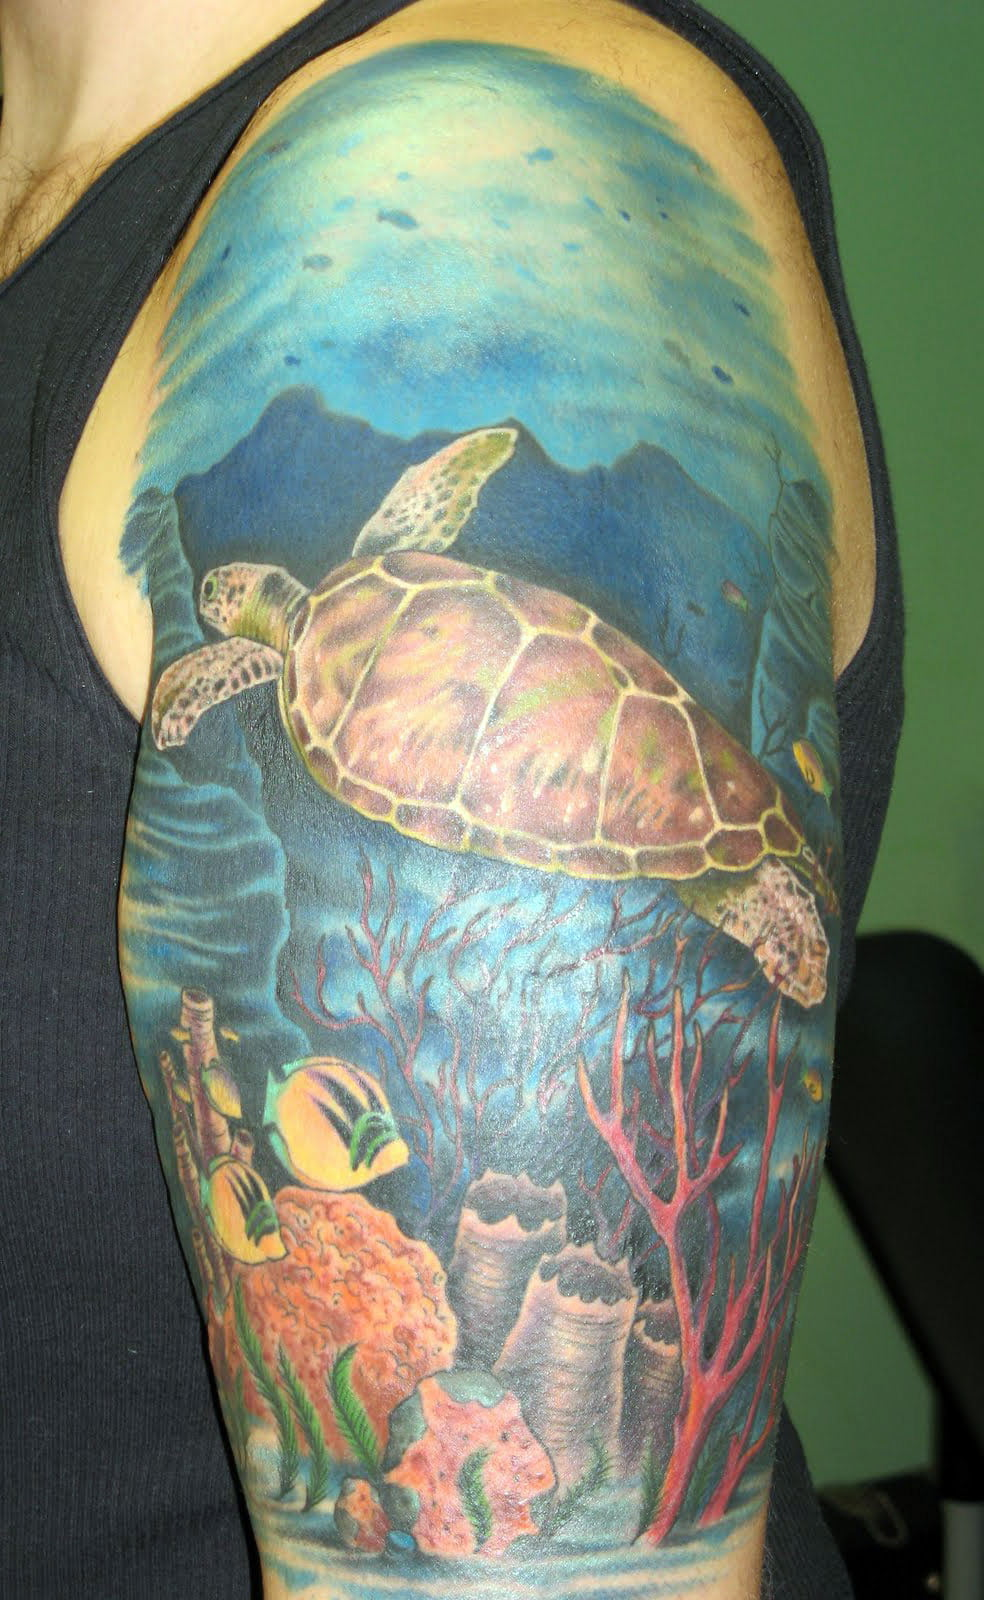 green sea turtle tattoos cool tattoos bonbaden. Black Bedroom Furniture Sets. Home Design Ideas